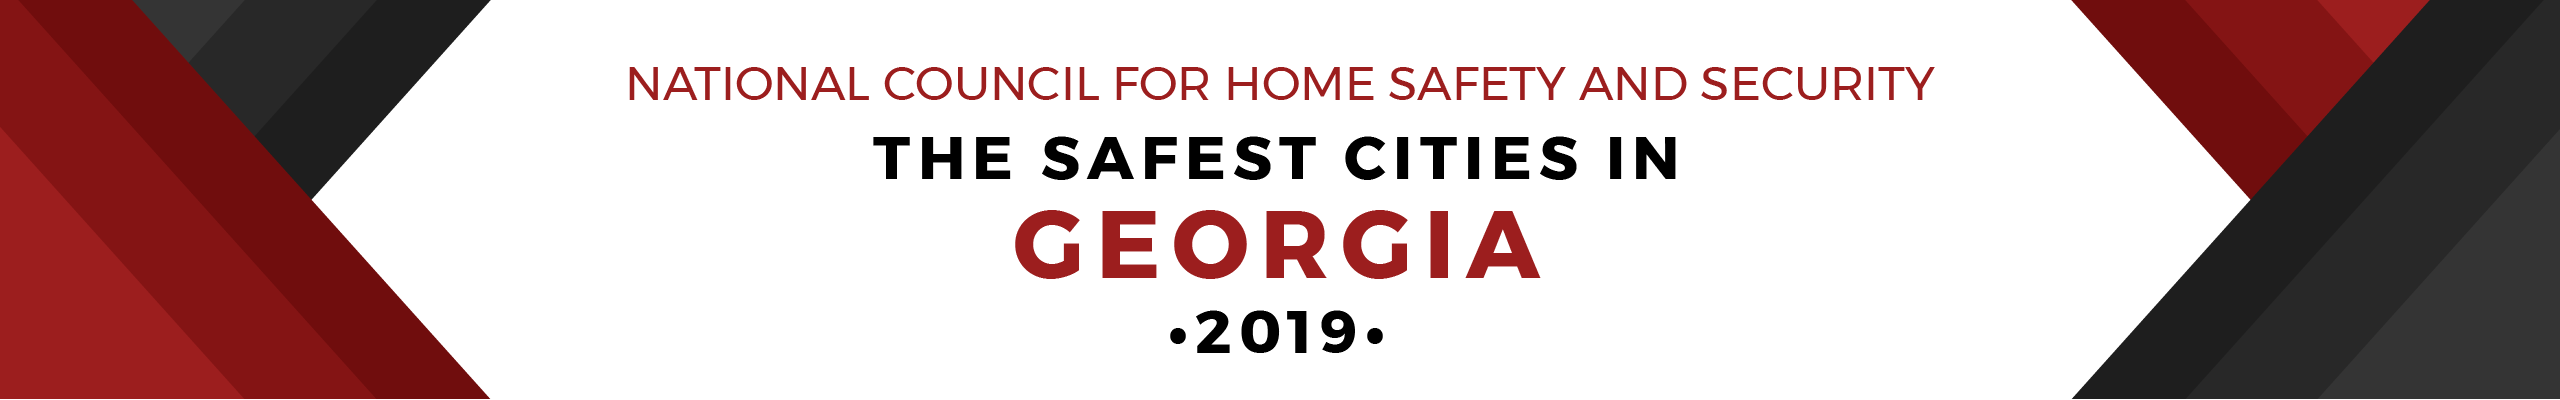 The Safest Cities in Georgia 2019